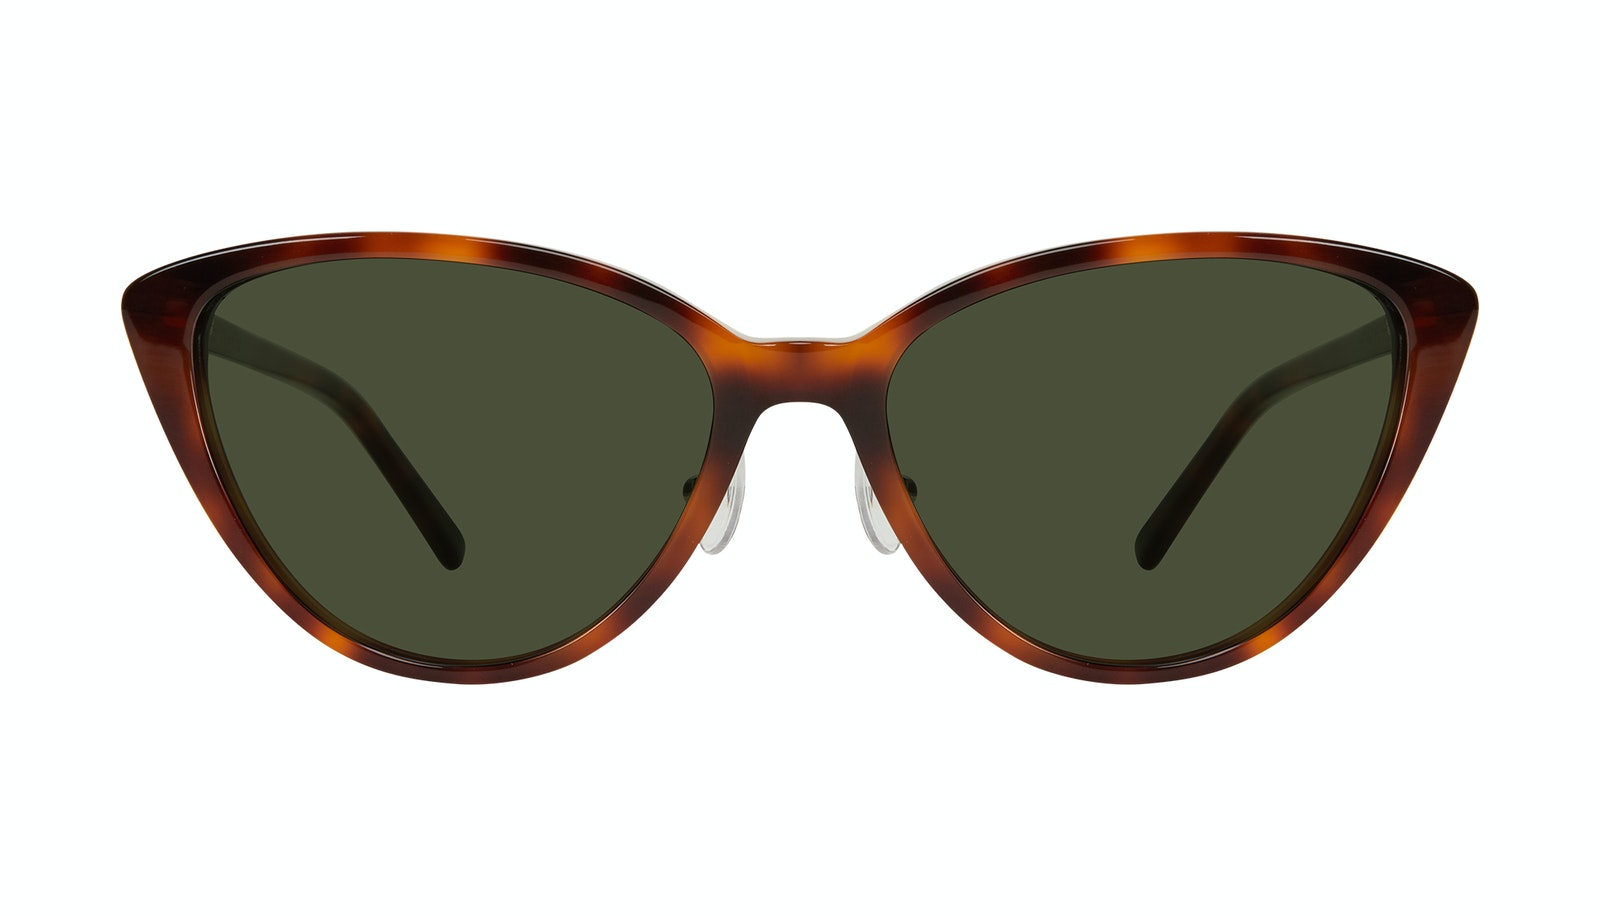 Affordable Fashion Glasses Cat Eye Sunglasses Women Sunset Tortoise